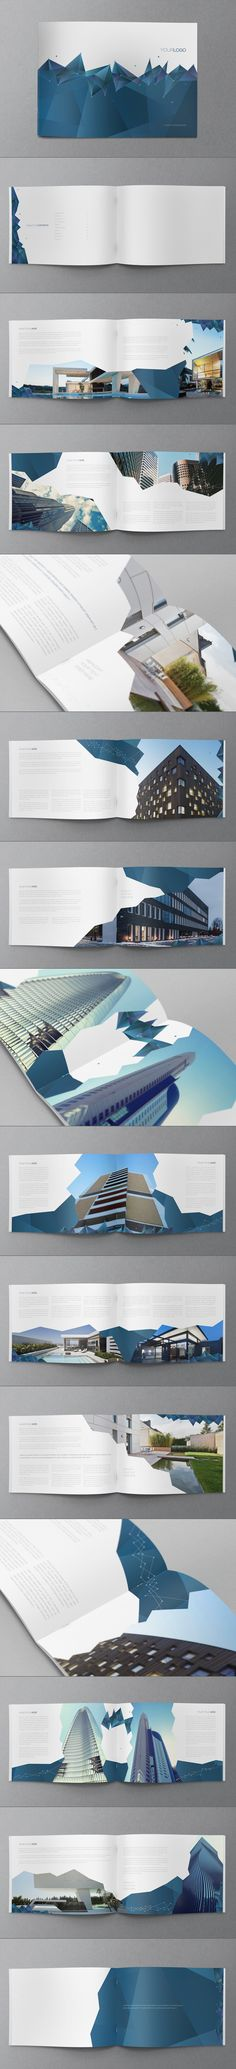 brochure ideas for science beautiful 193 best brochure design amp layout images of brochure ideas for science Design Brochure, Brochure Layout, Graphic Design Layouts, Layout Design, Brochure Ideas, Design Posters, Stationery Design, Leaflet Design, Booklet Design